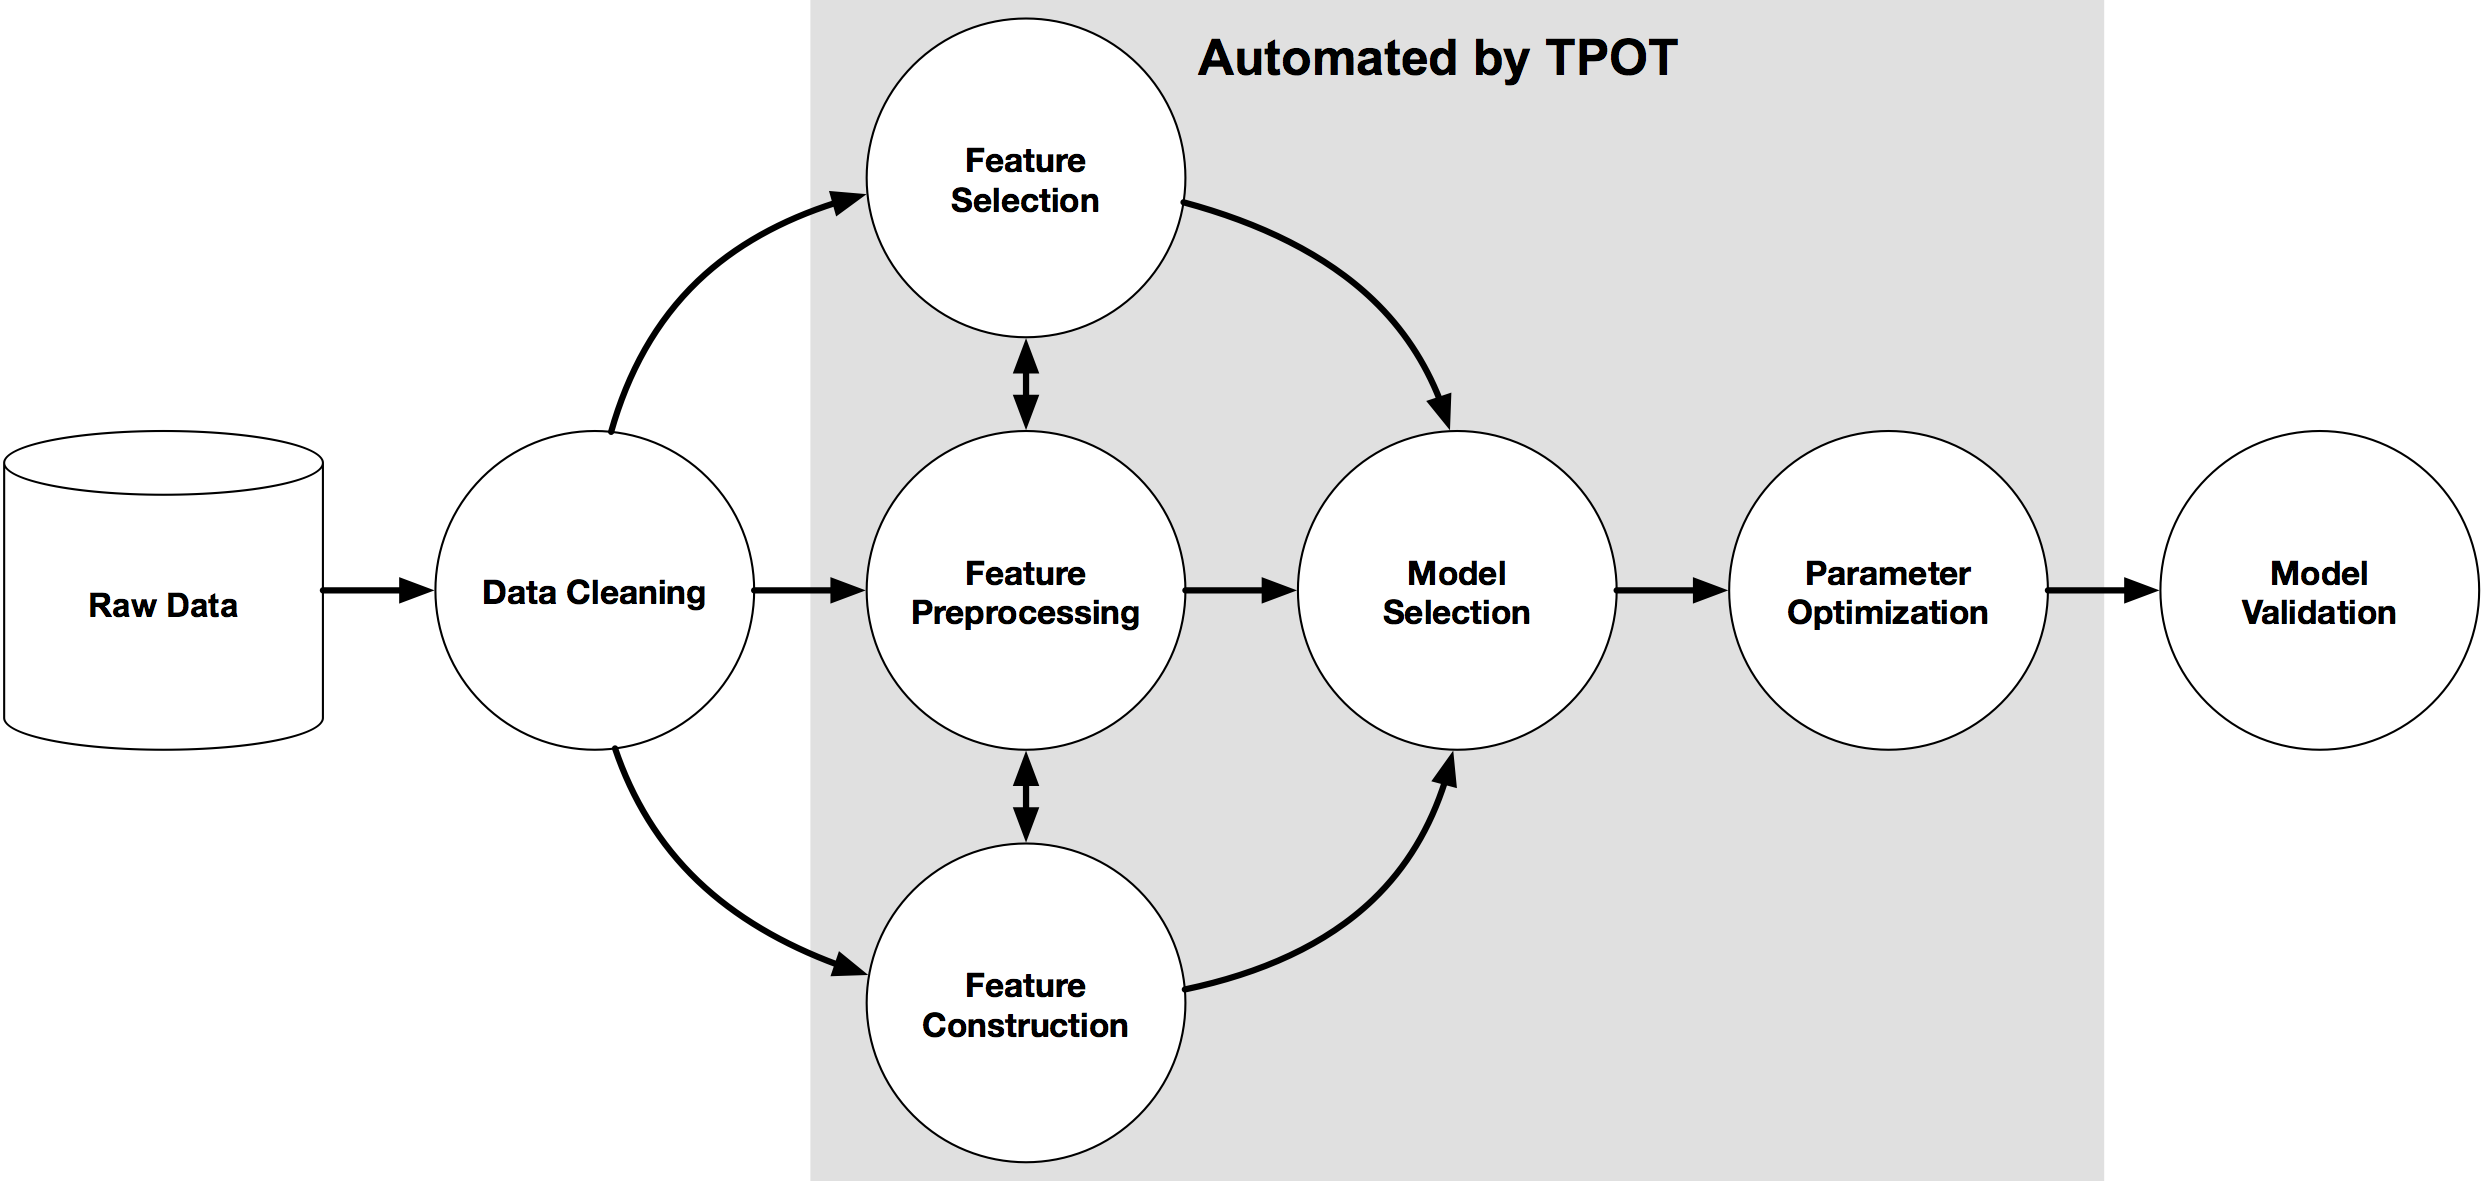 TPOT: A great tool to automate your ML workflow | Kaggle